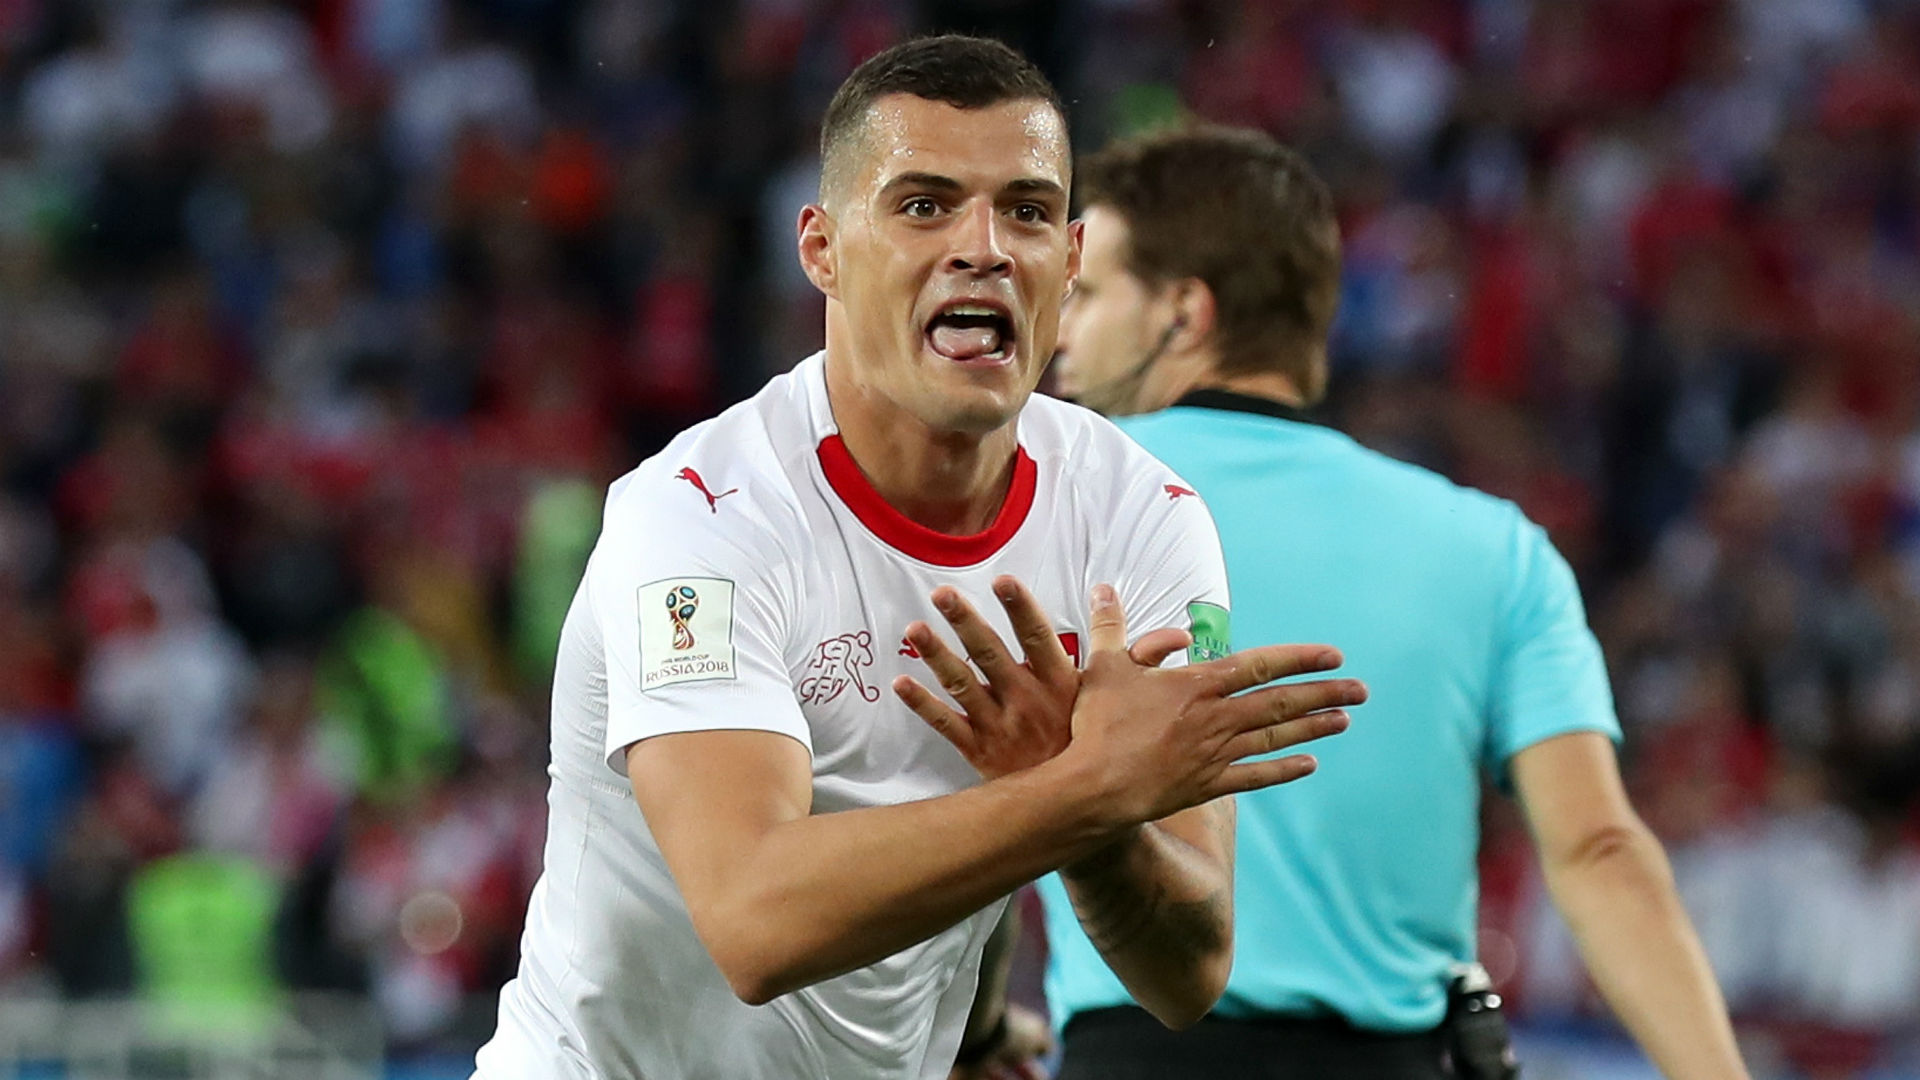 Granit Xhaka Switzerland Serbia World Cup 2018